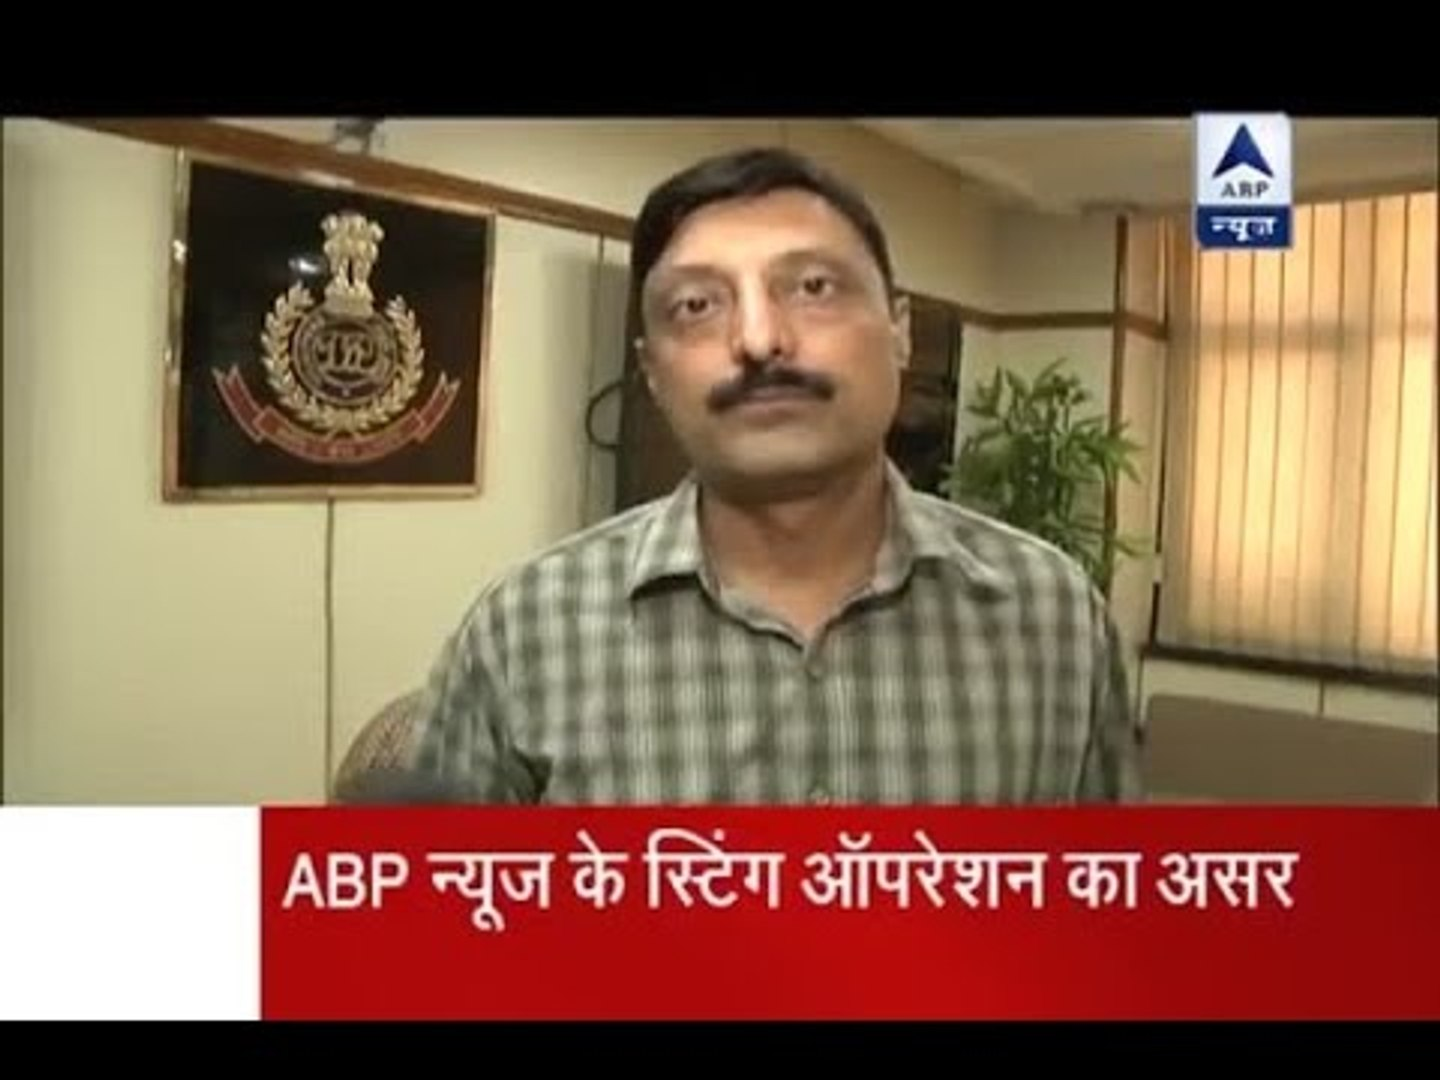 Jan Man: Effect of demonetisation sting done by ABP News, Delhi Crime Branch to investigat